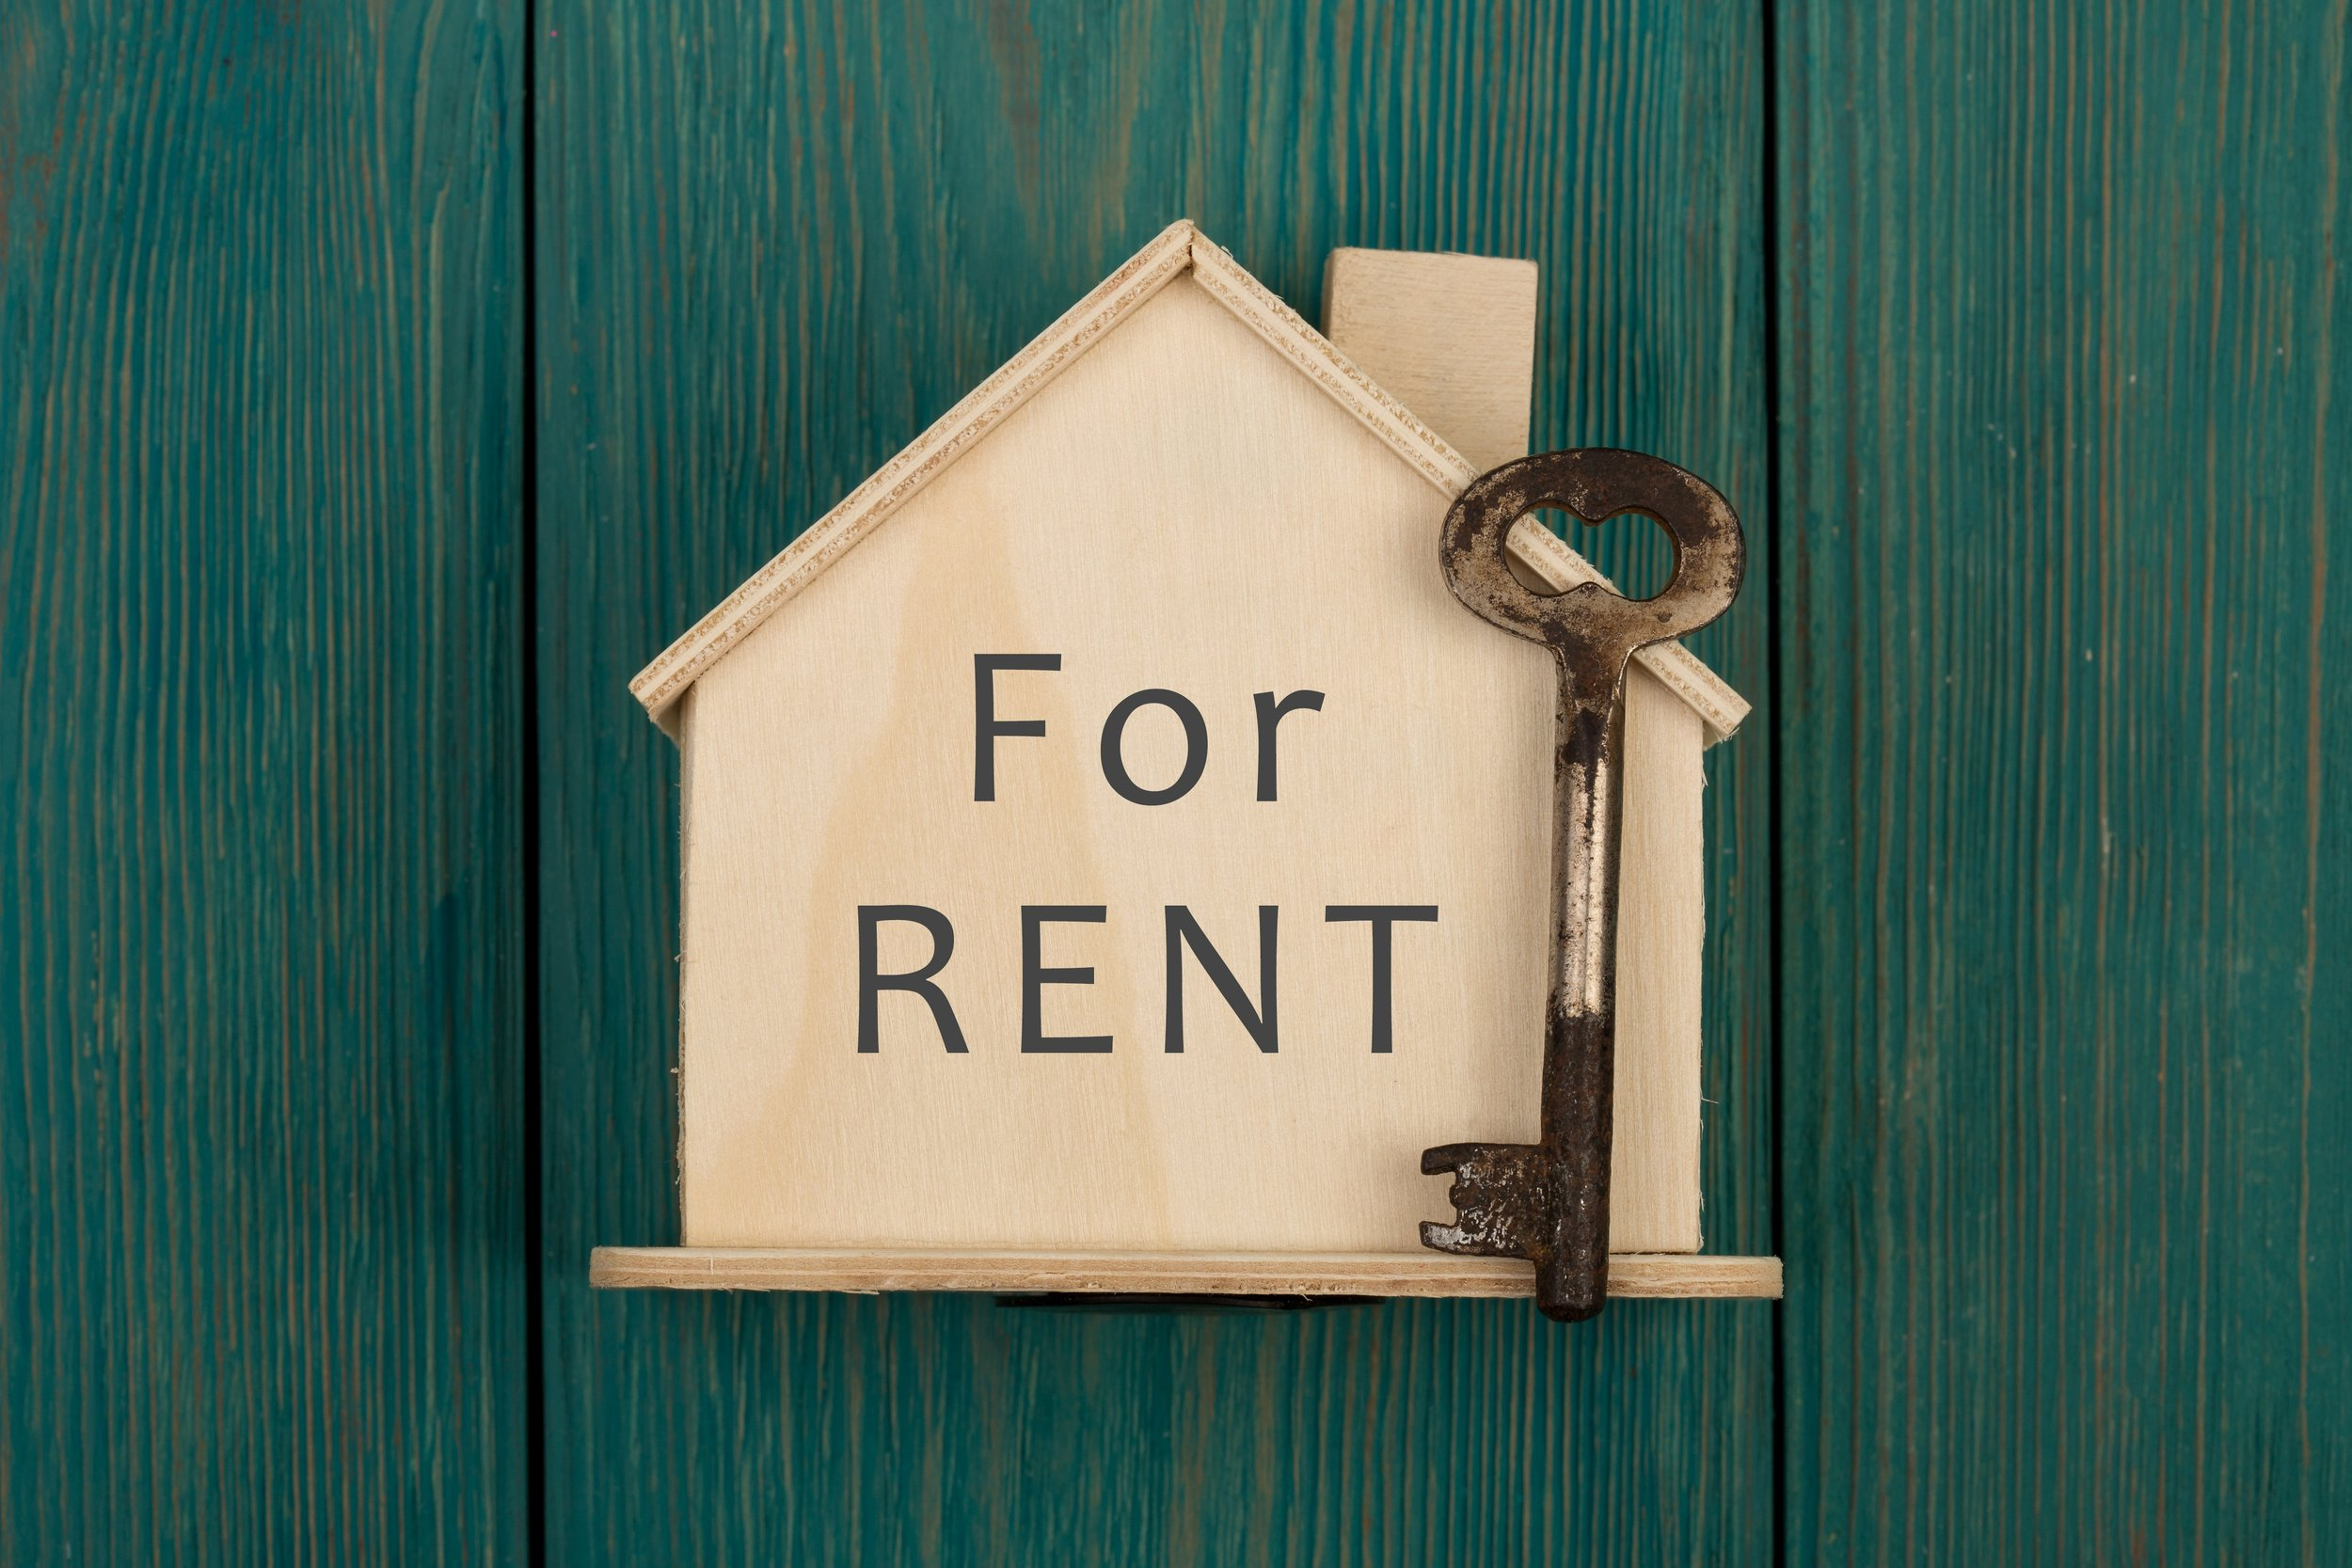 Little house with text For rent and key.jpg